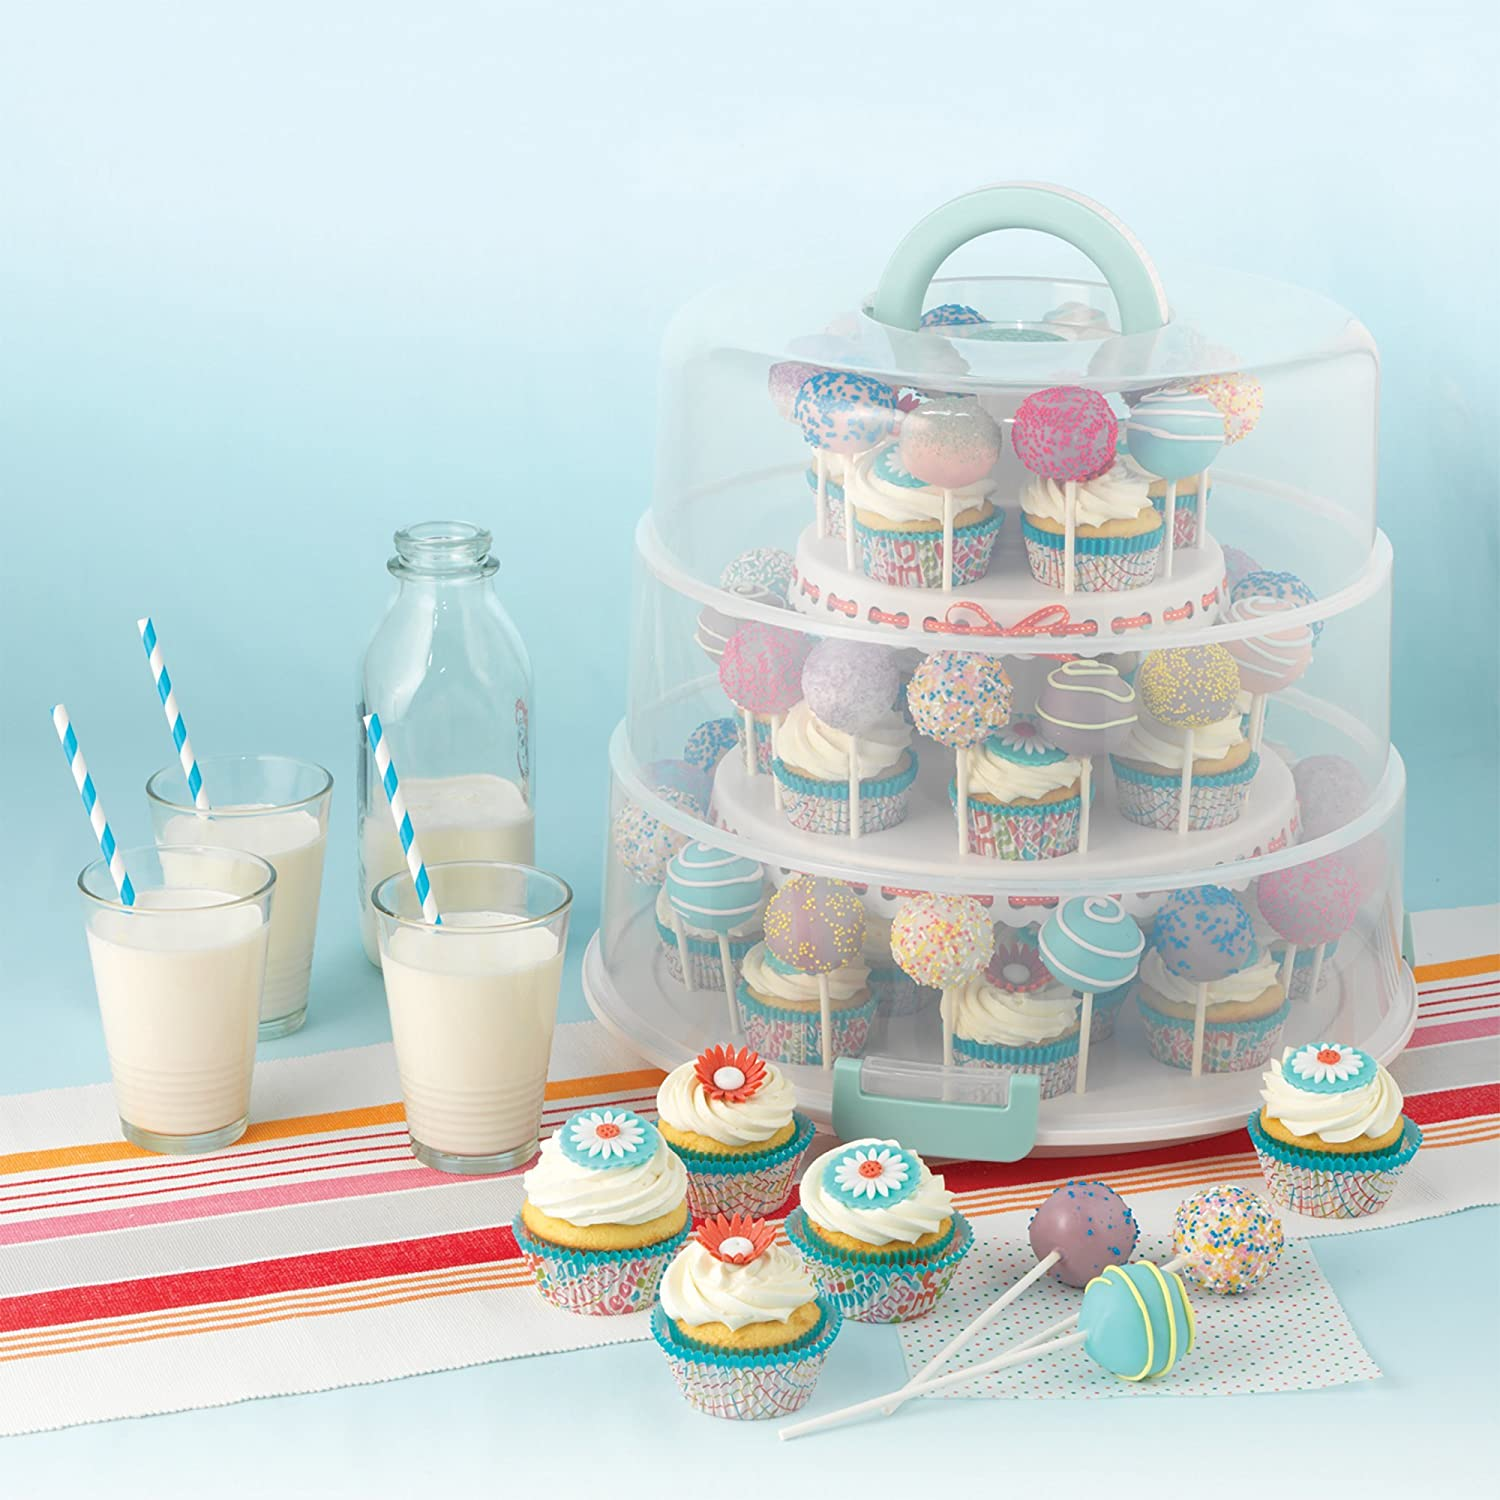 Sweet Creations 3 Tier Collapsible Cupcake And Cakepop